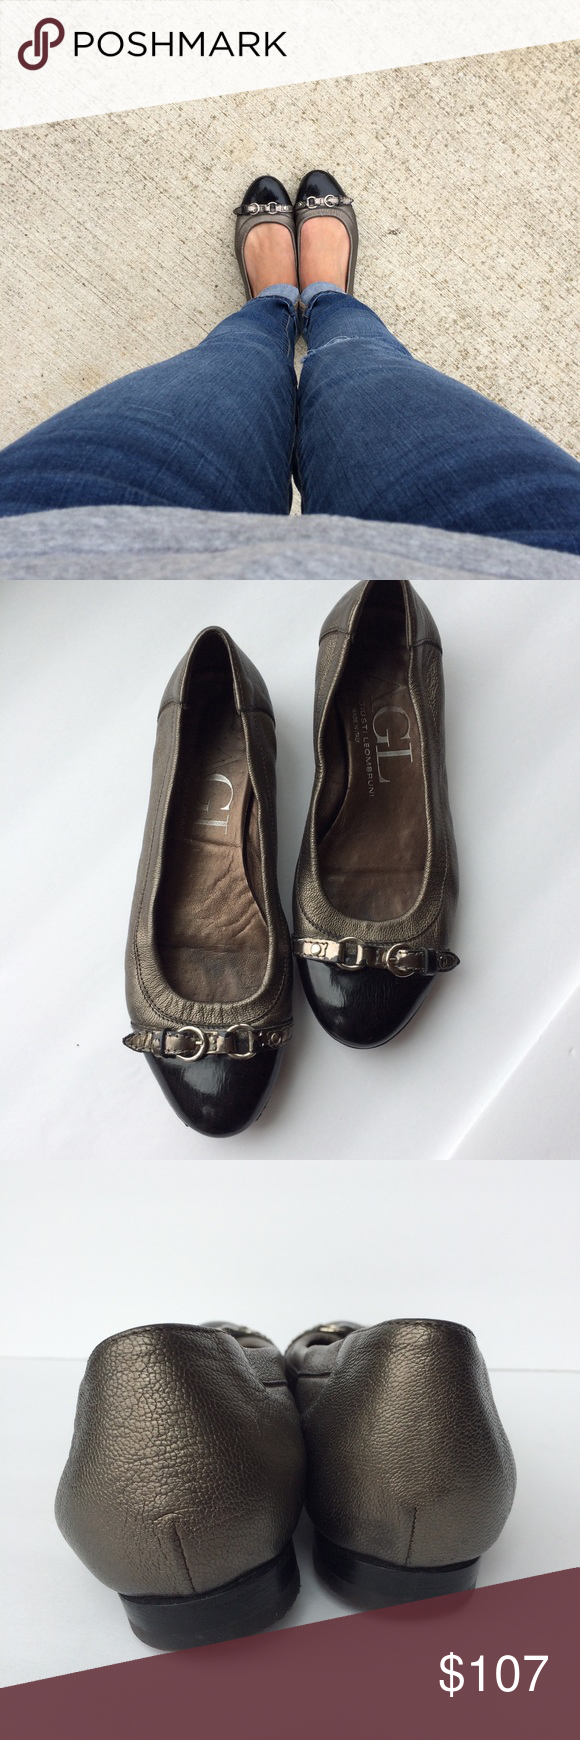 37e043819d7bf AGL Cap Toe Ballet Flats Black Bronze Leather The iconic shoe from AGL, the  cap